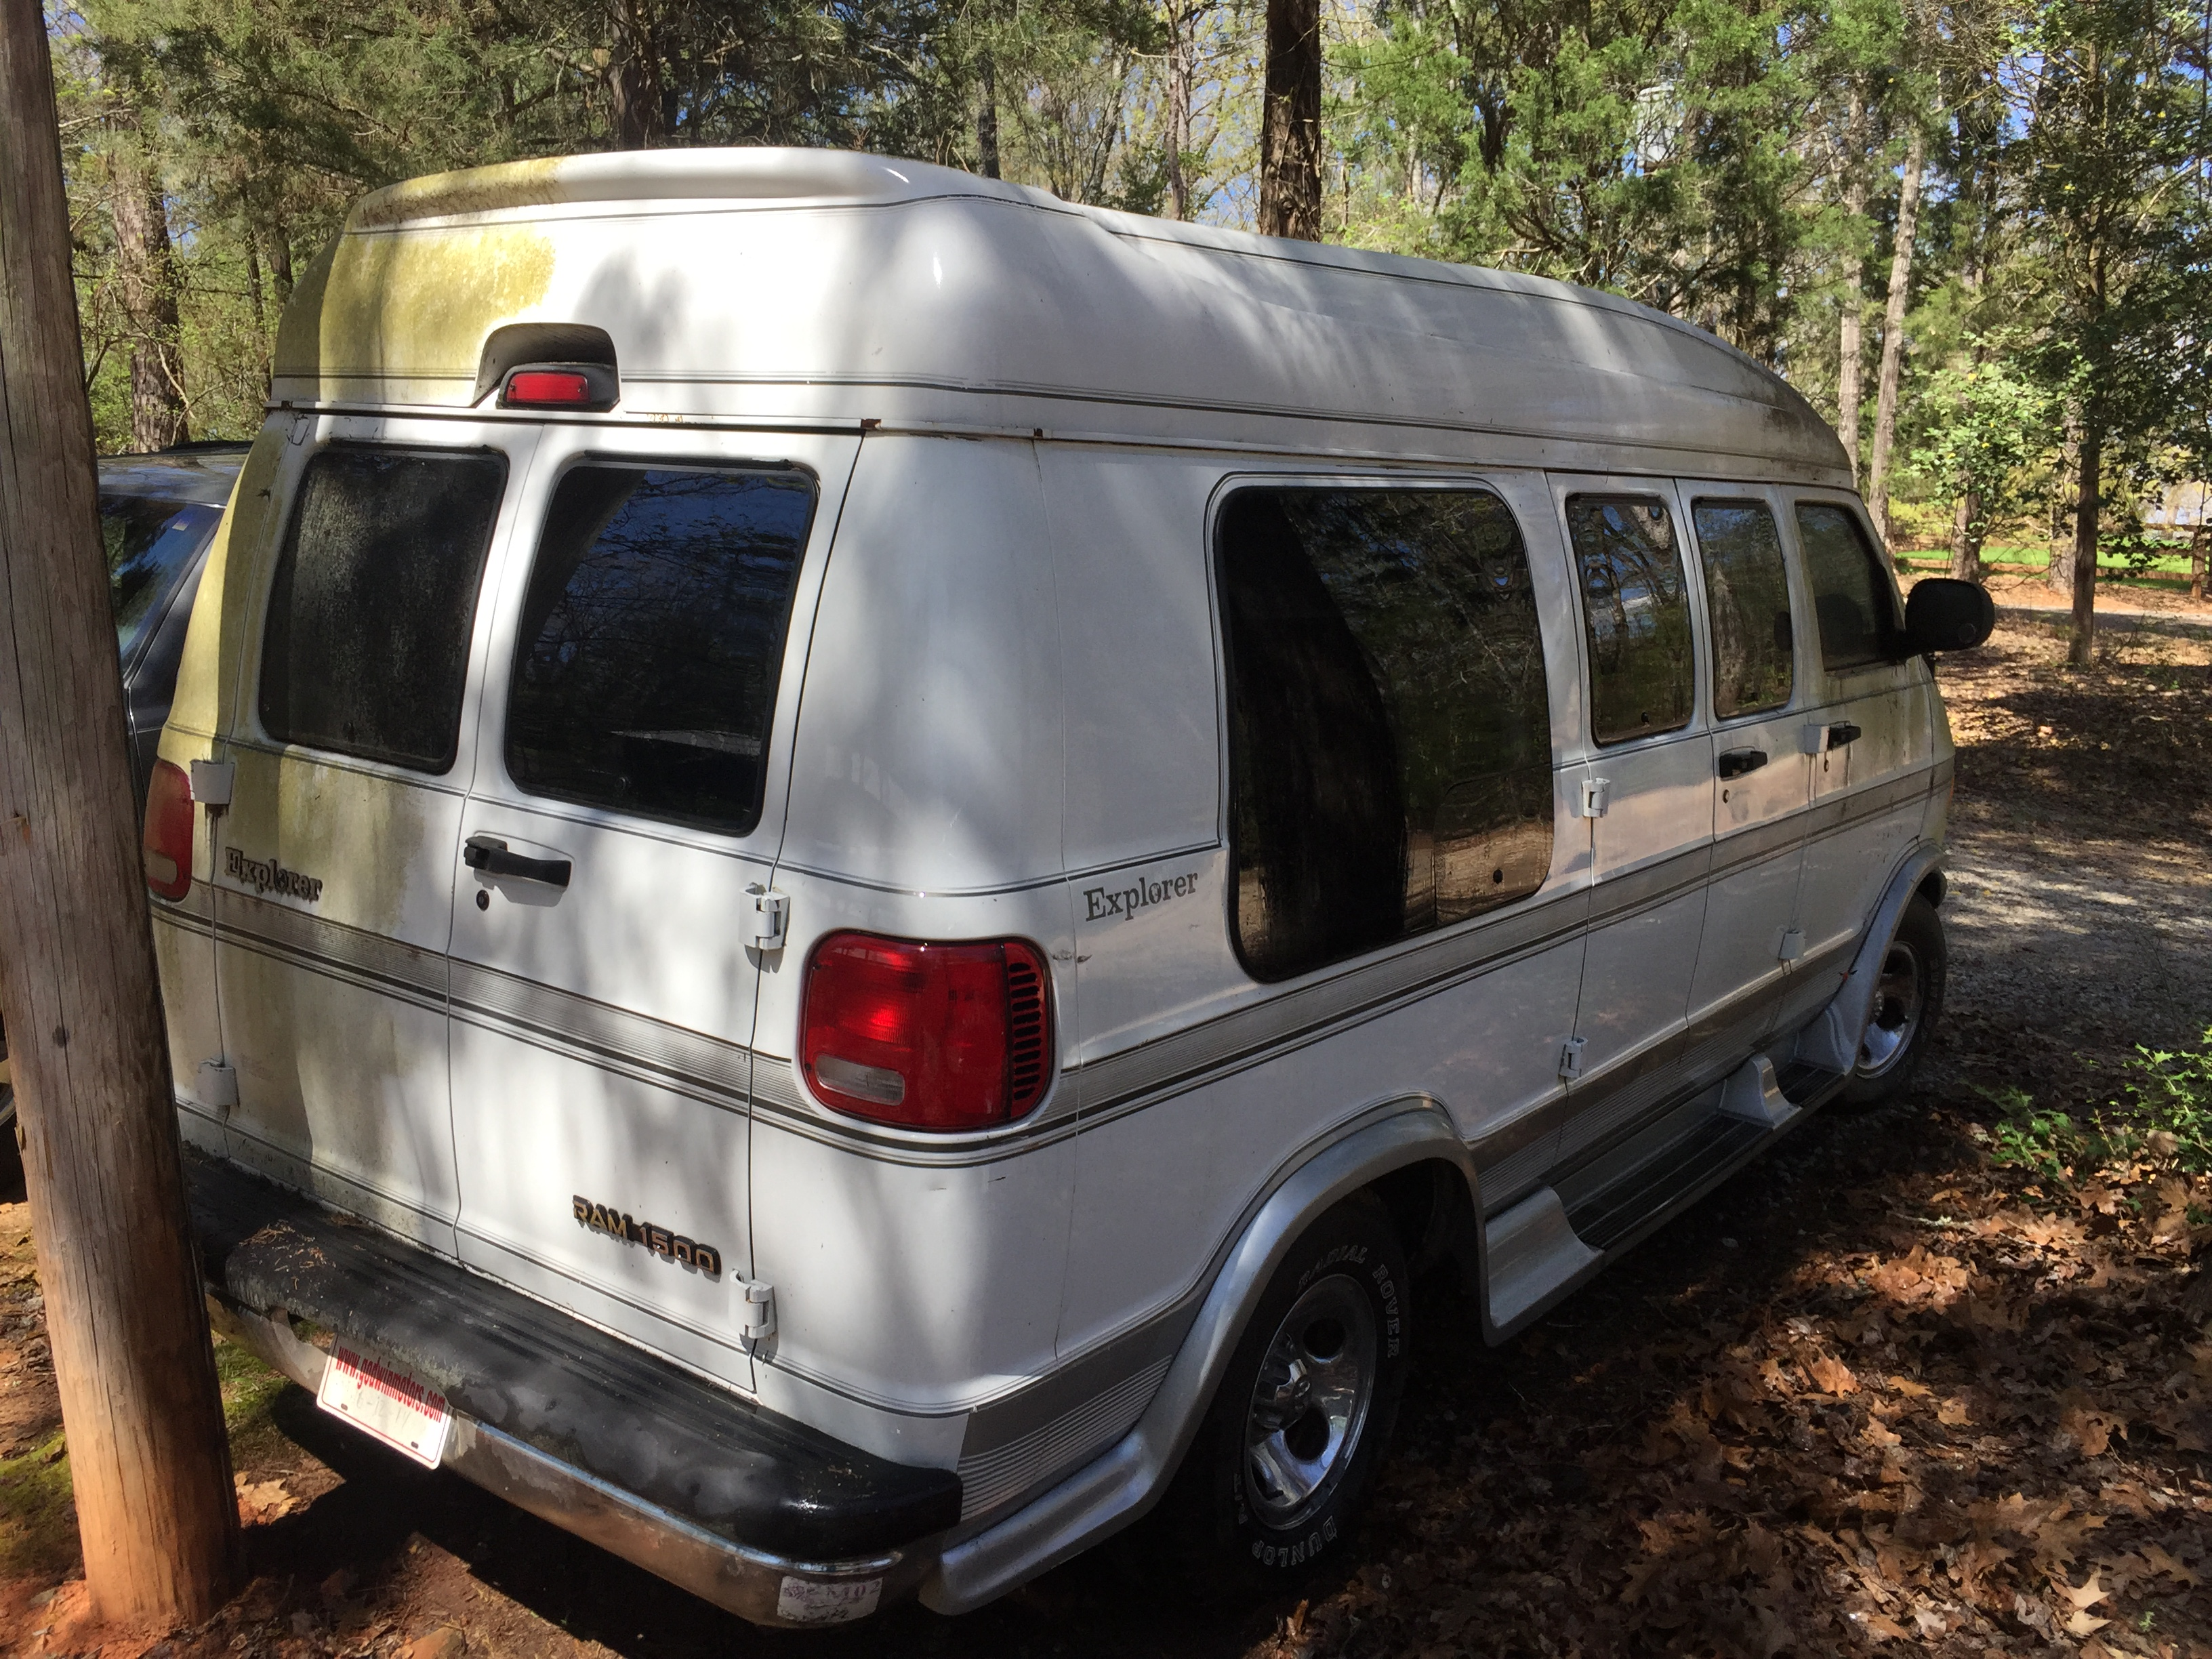 2000 Dodge Ram 1500 Explorer Conversion Van